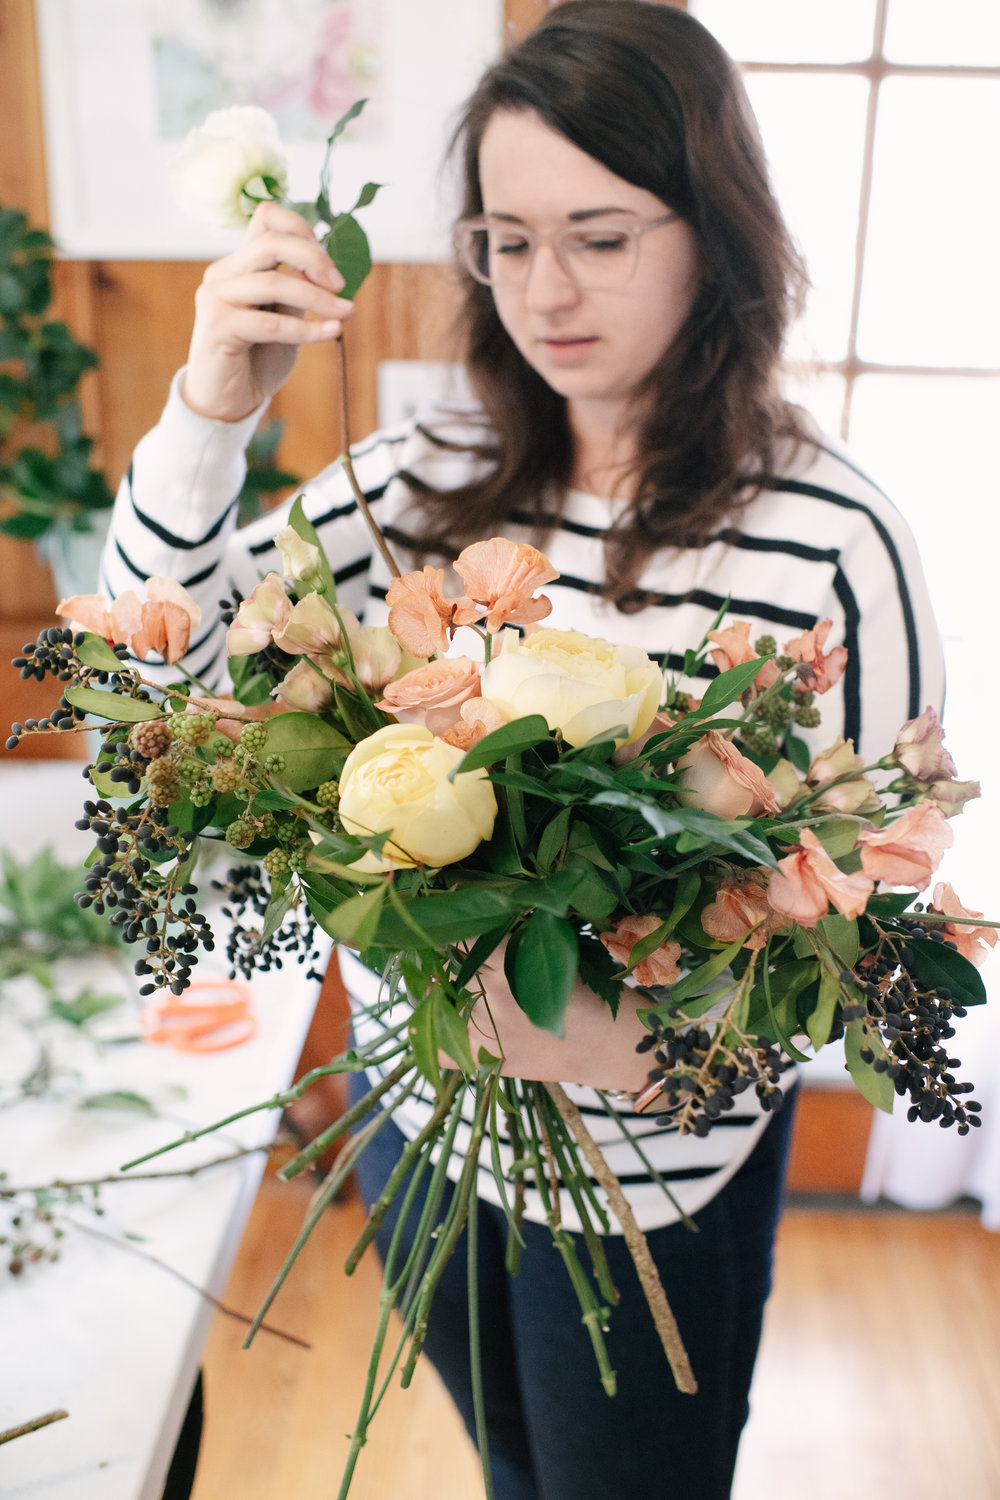 Courtney Inghram Norfolk Virginia Wedding Florist Education Workshop